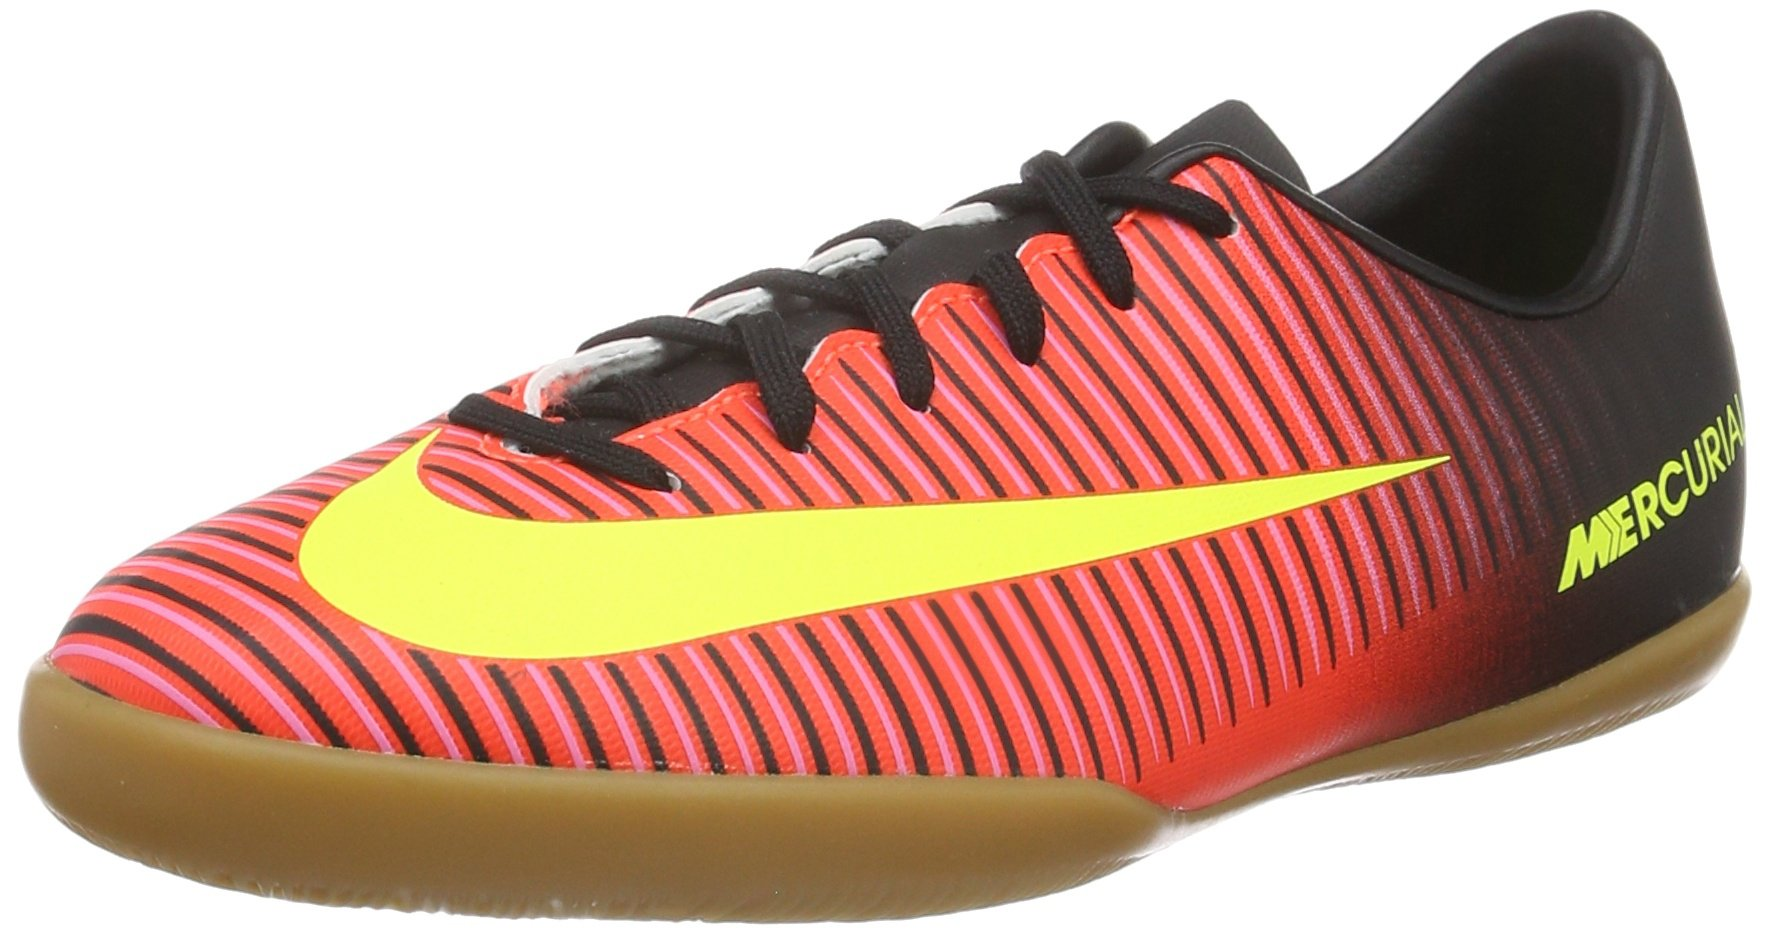 NIKE Kid's Jr Mercurialx Vapor XI IC, Total Crimson/Vlt-Blk-Pnk Blst, Youth Size 4